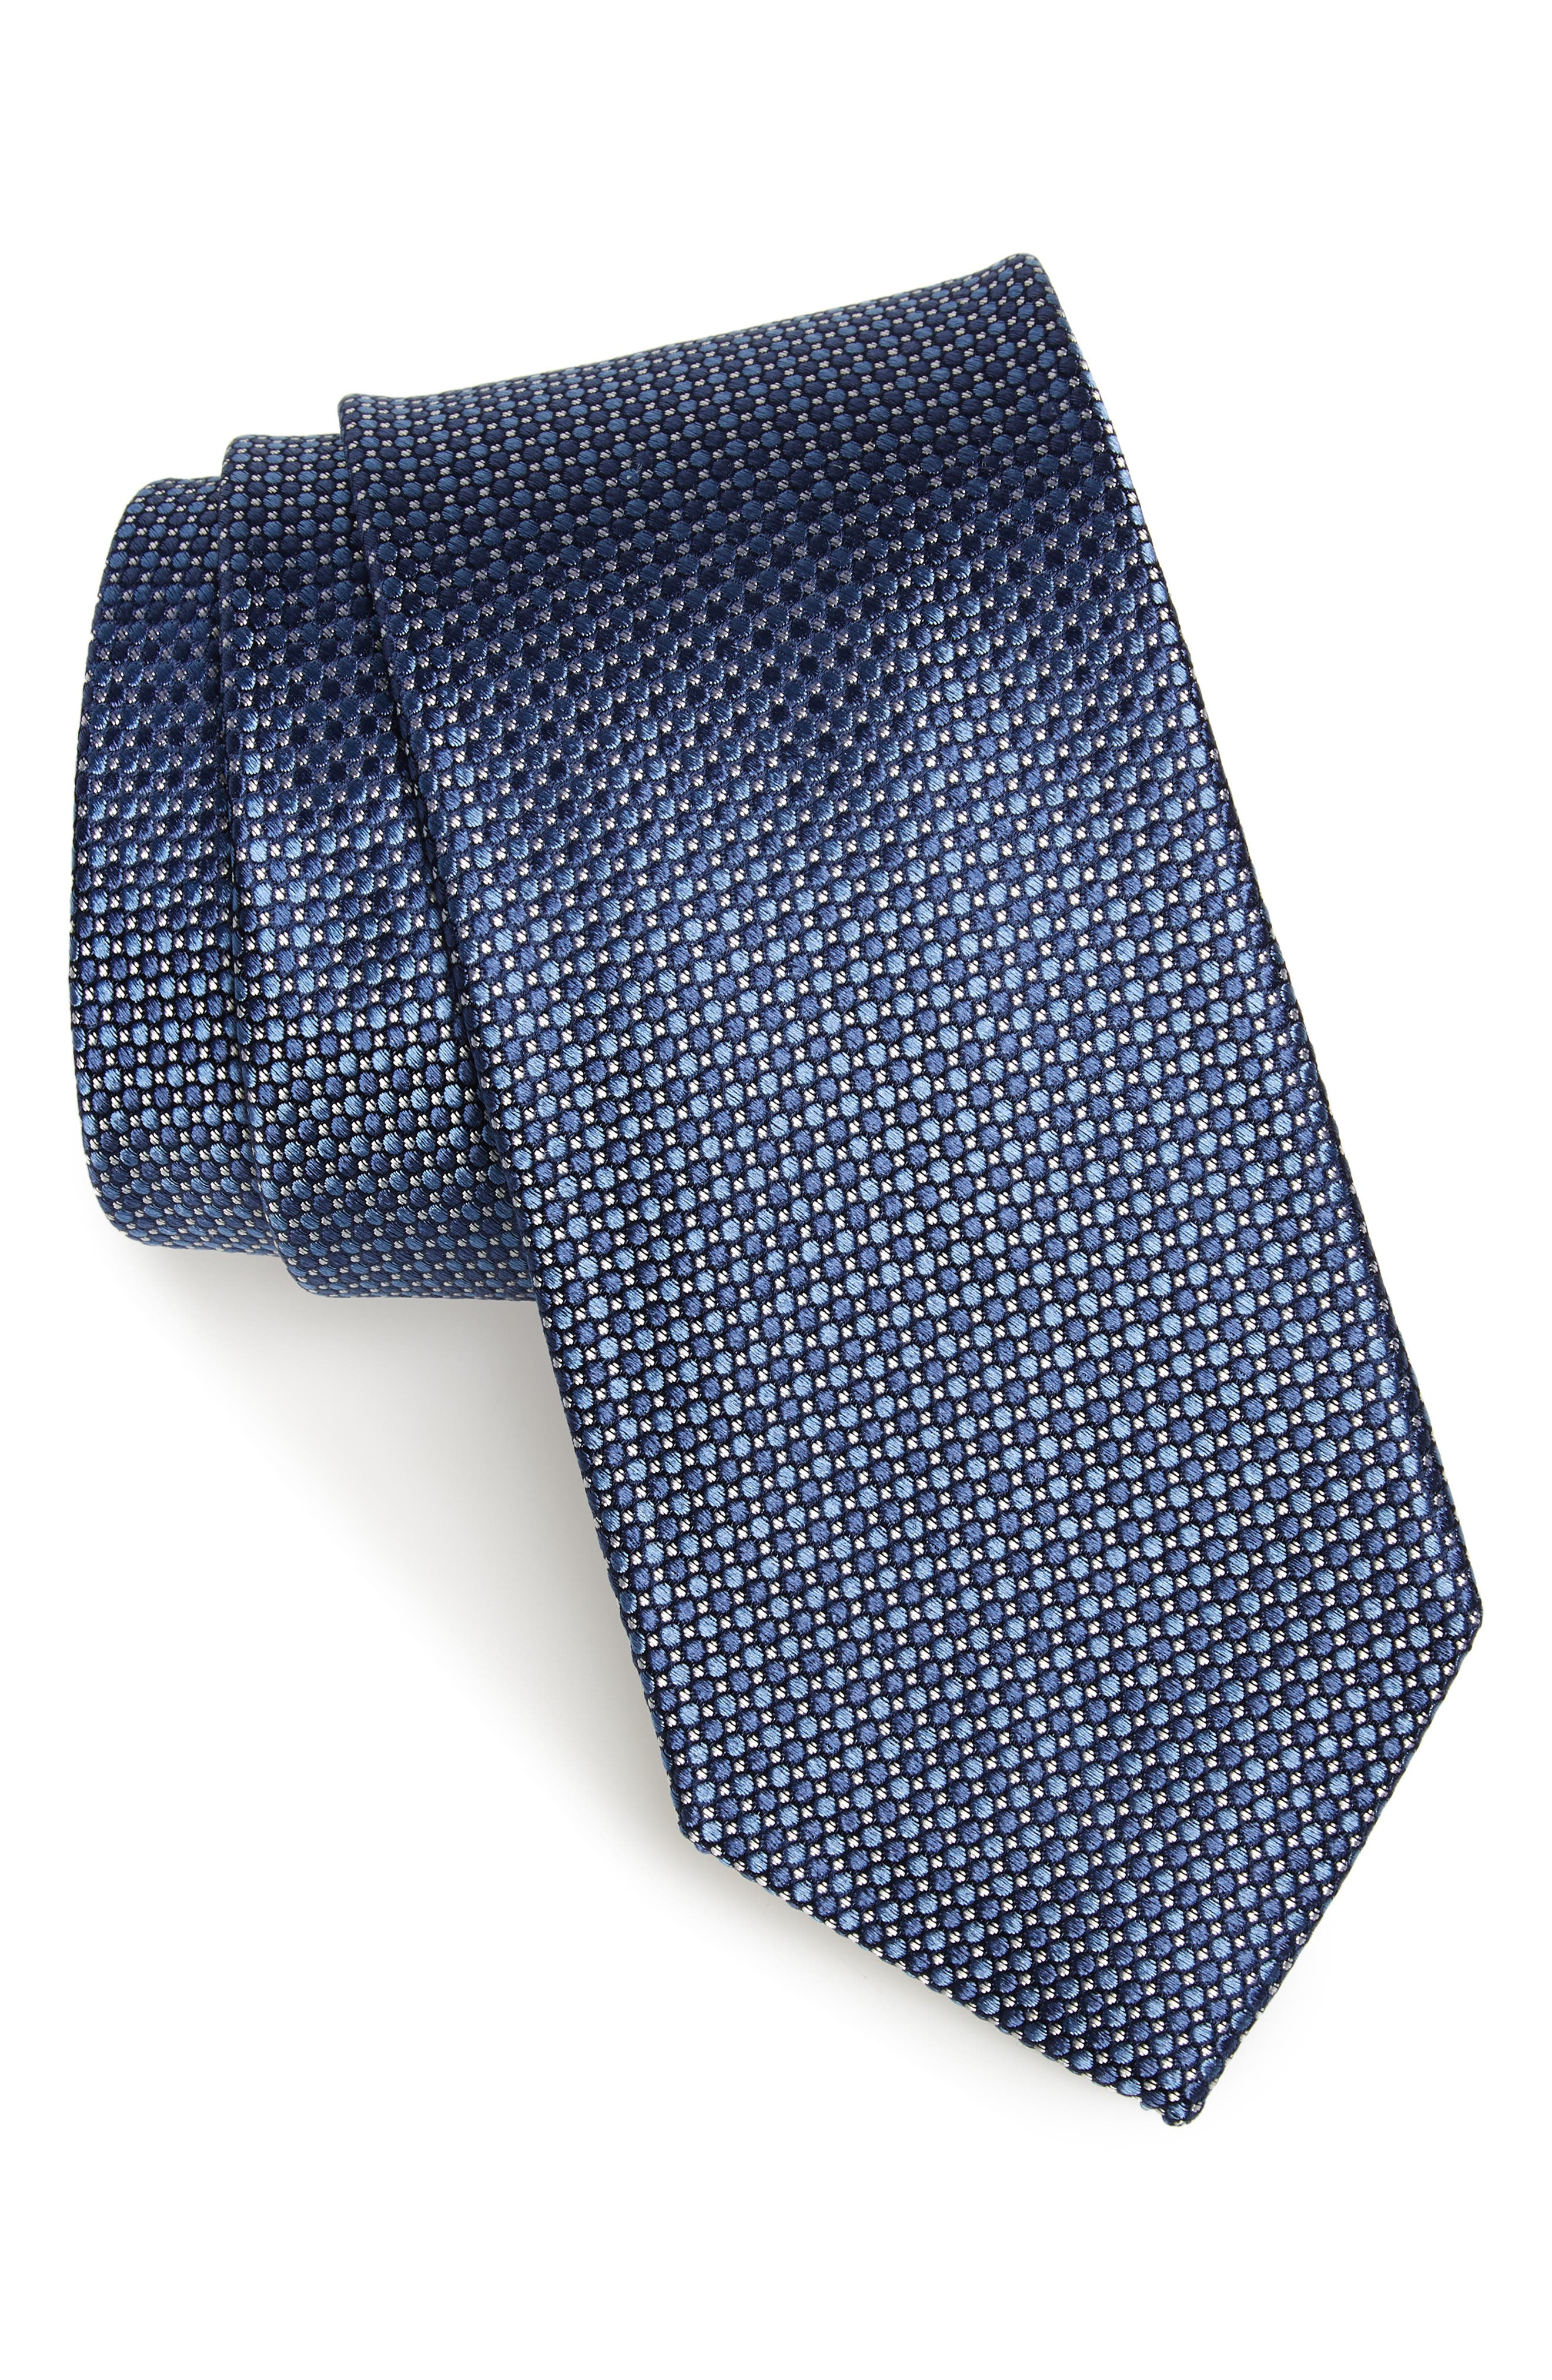 Soler Solid Silk Tie,                         Main,                         color, NAVY